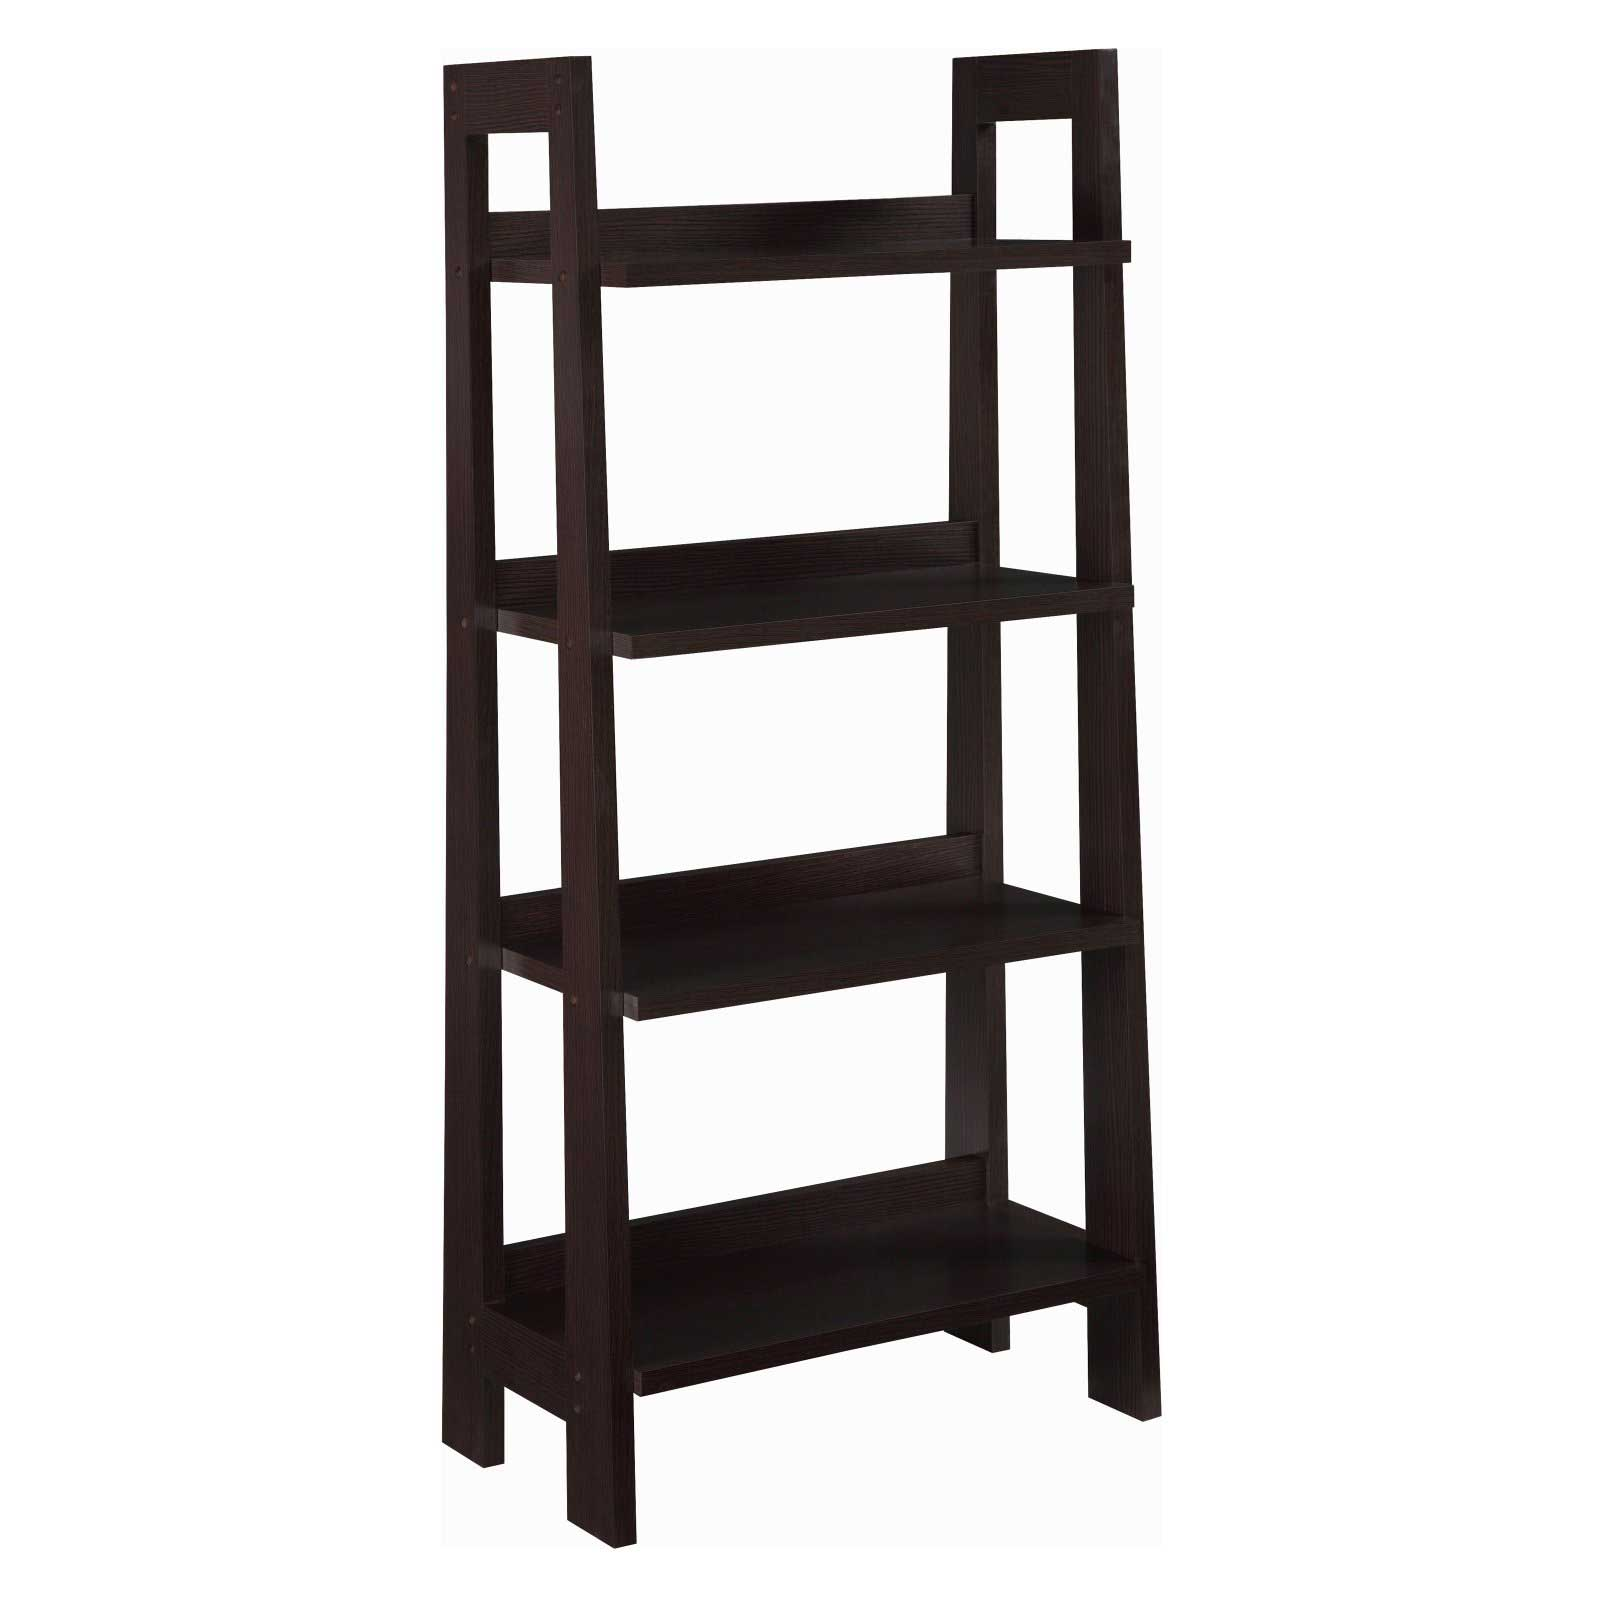 Mission folding bookcase as great filing system Folding bookshelf